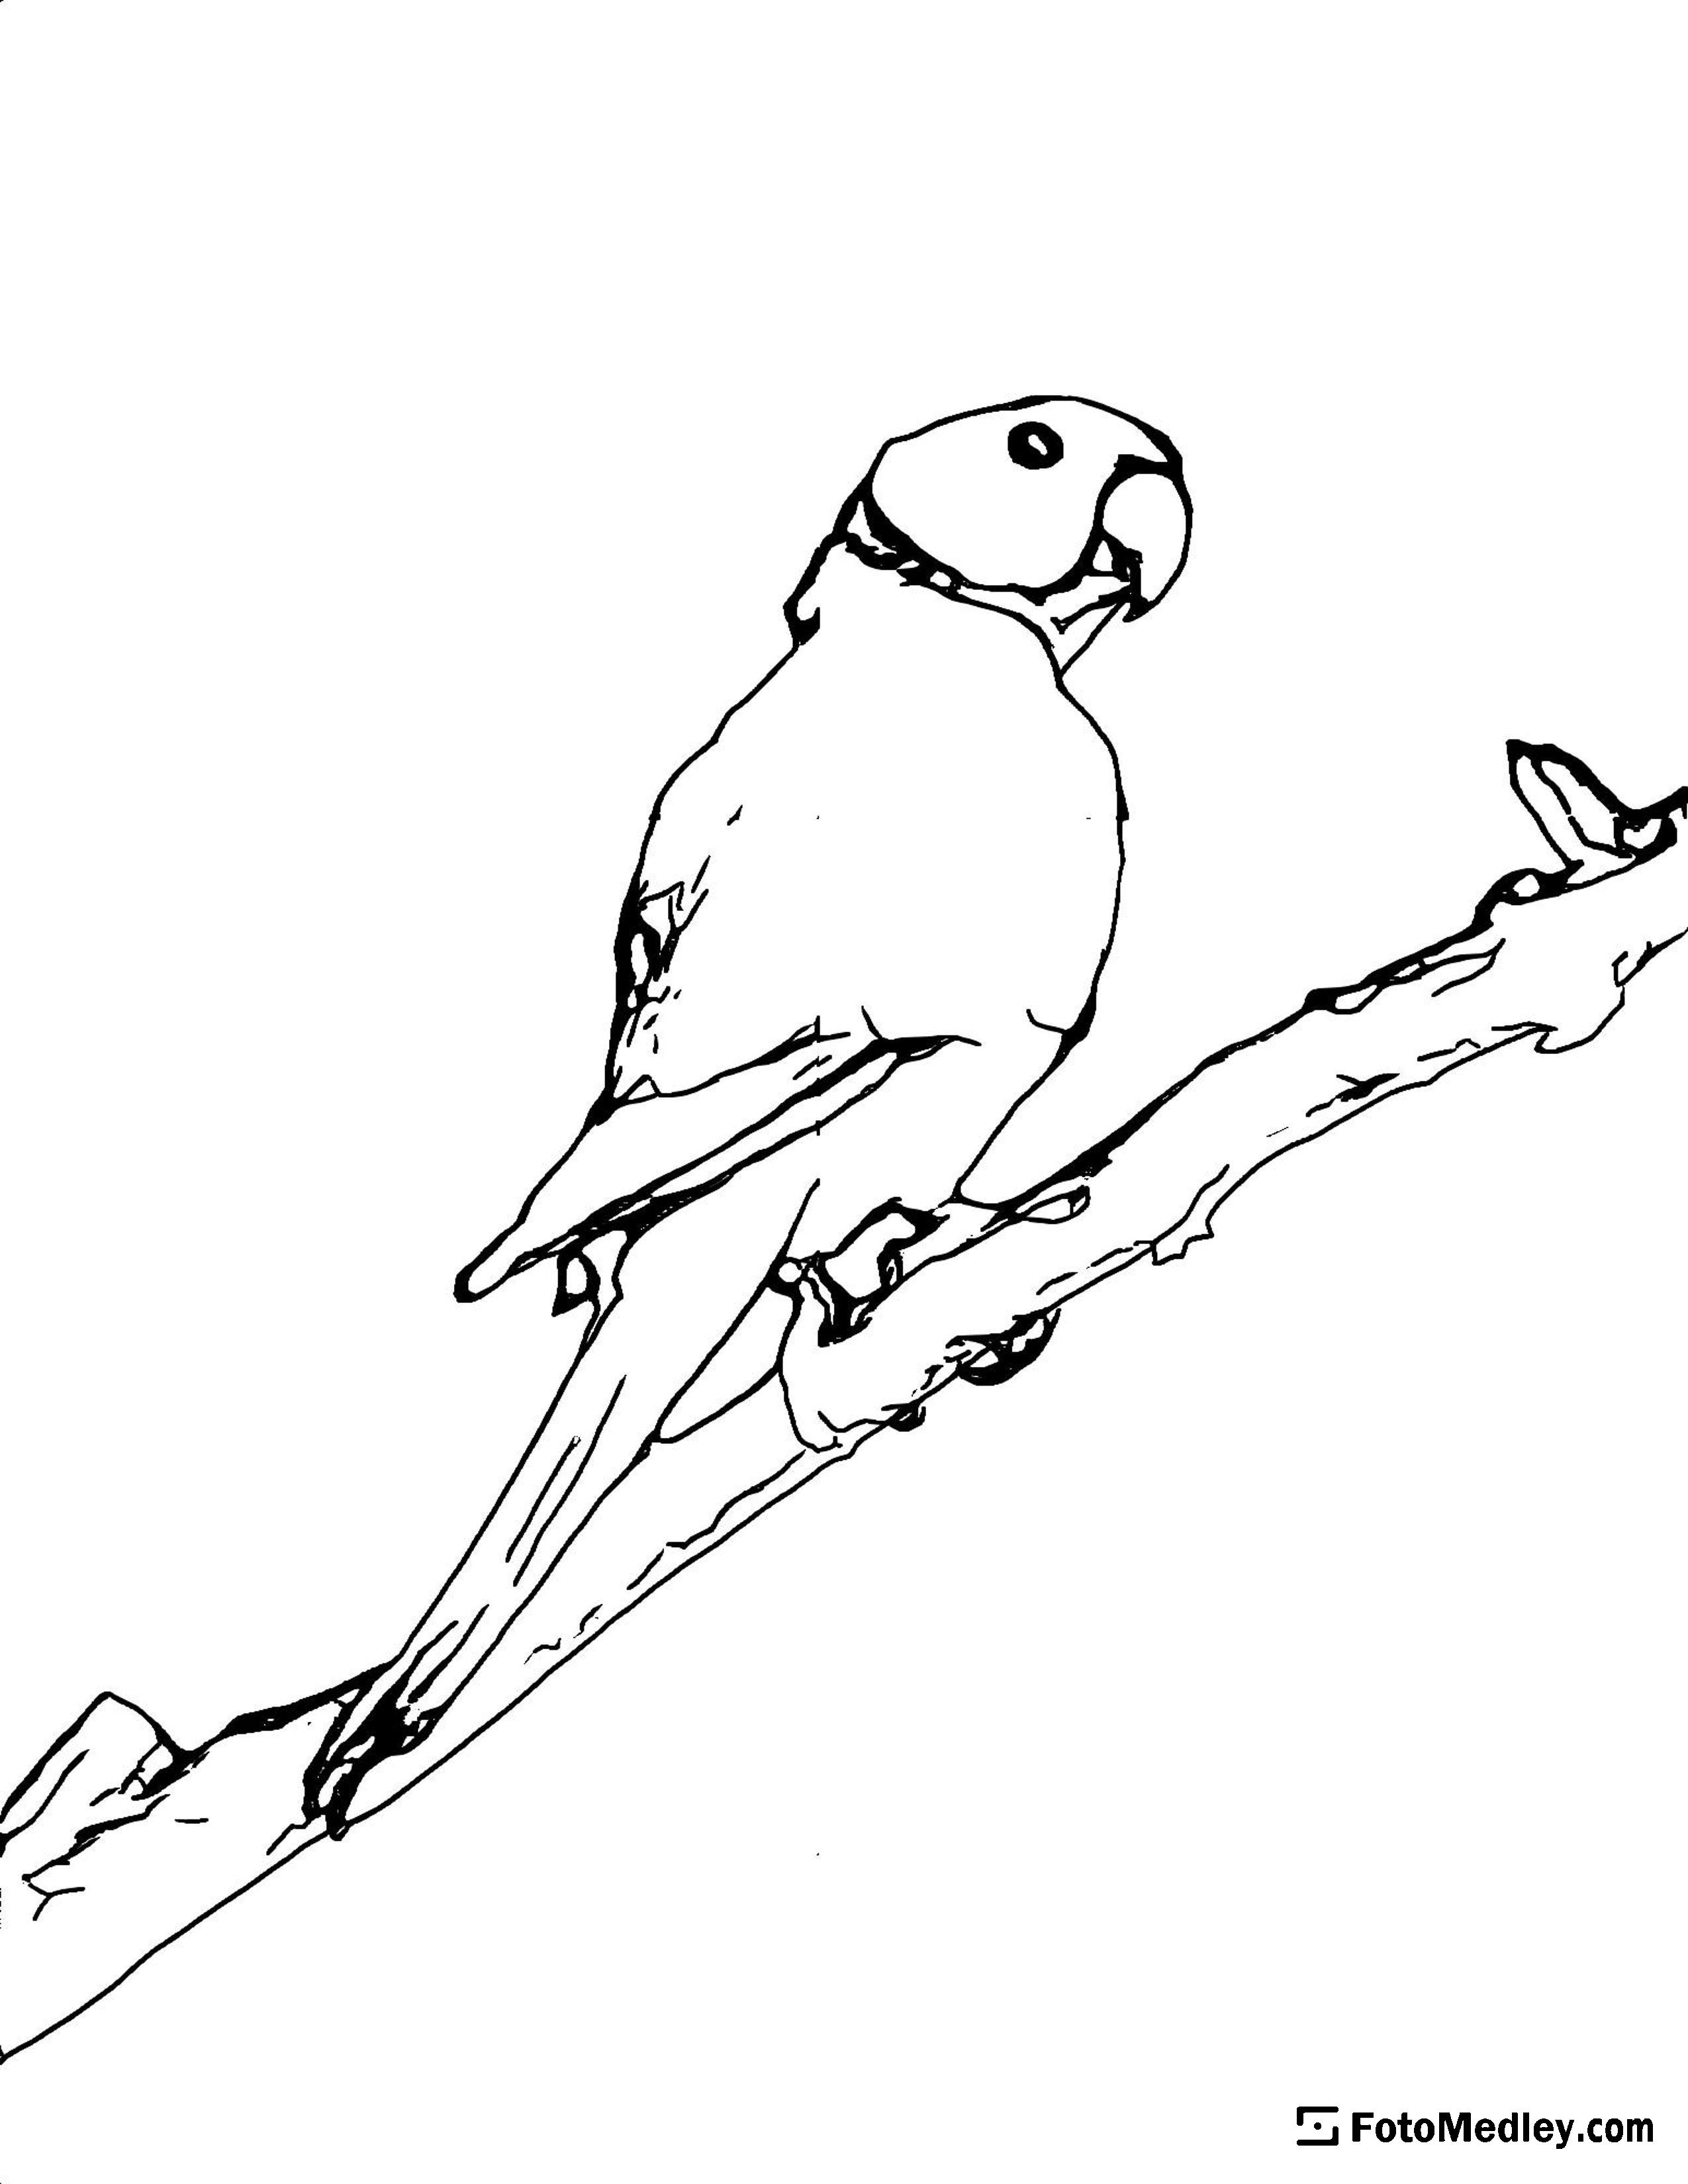 A coloring page of a a parrot standing on a branch.